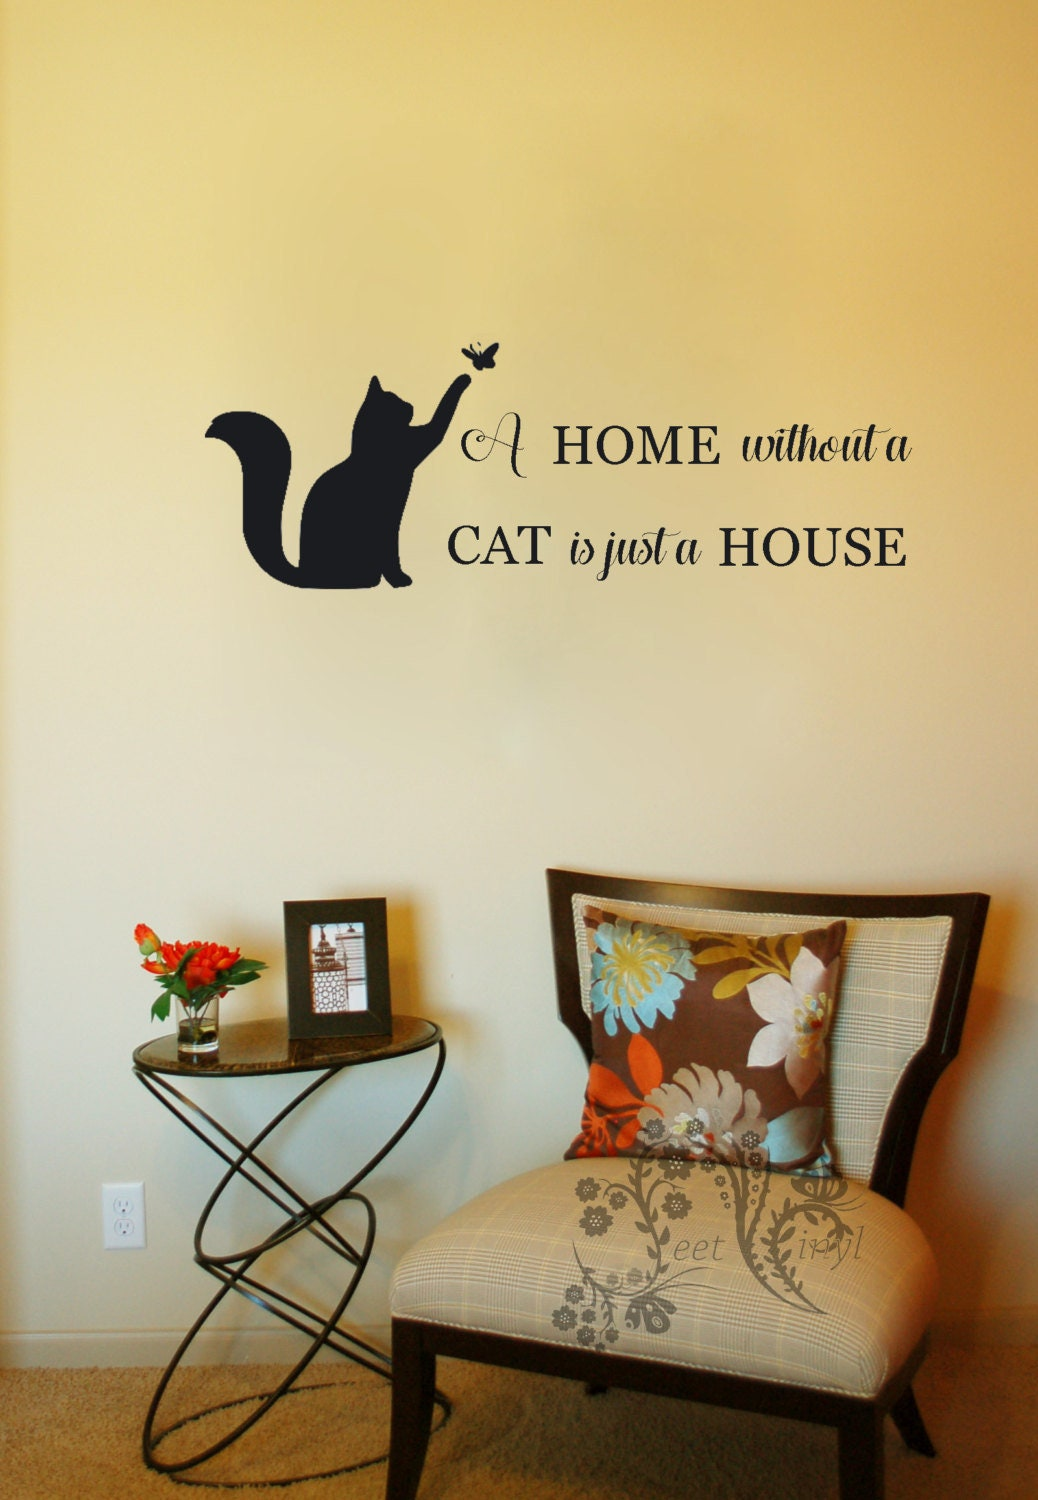 A home without a cat is just a house Family wall Decals | Etsy